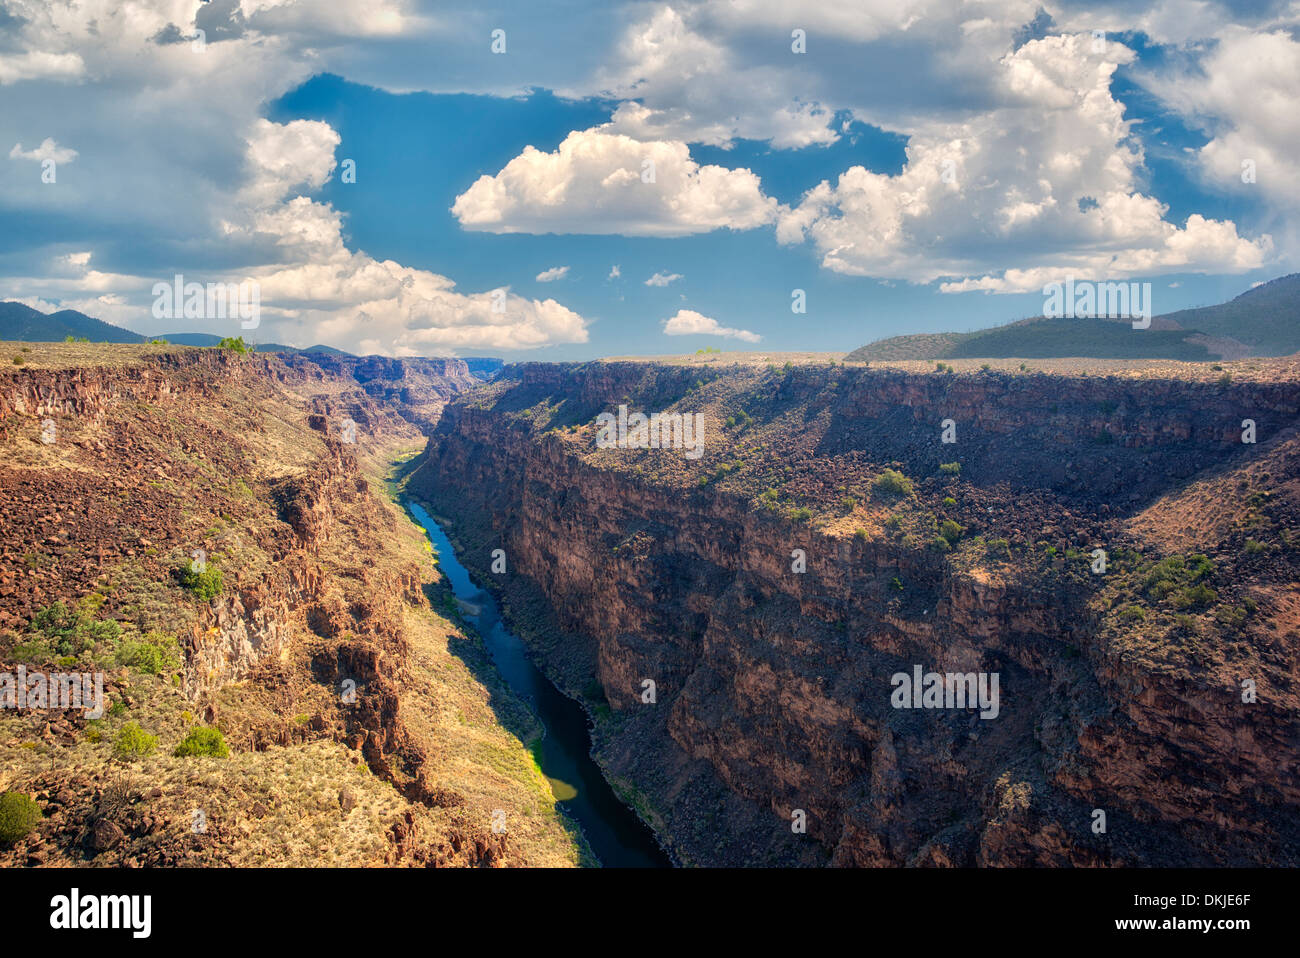 Rio Grande River and gorge near Taos, New Mexico. - Stock Image